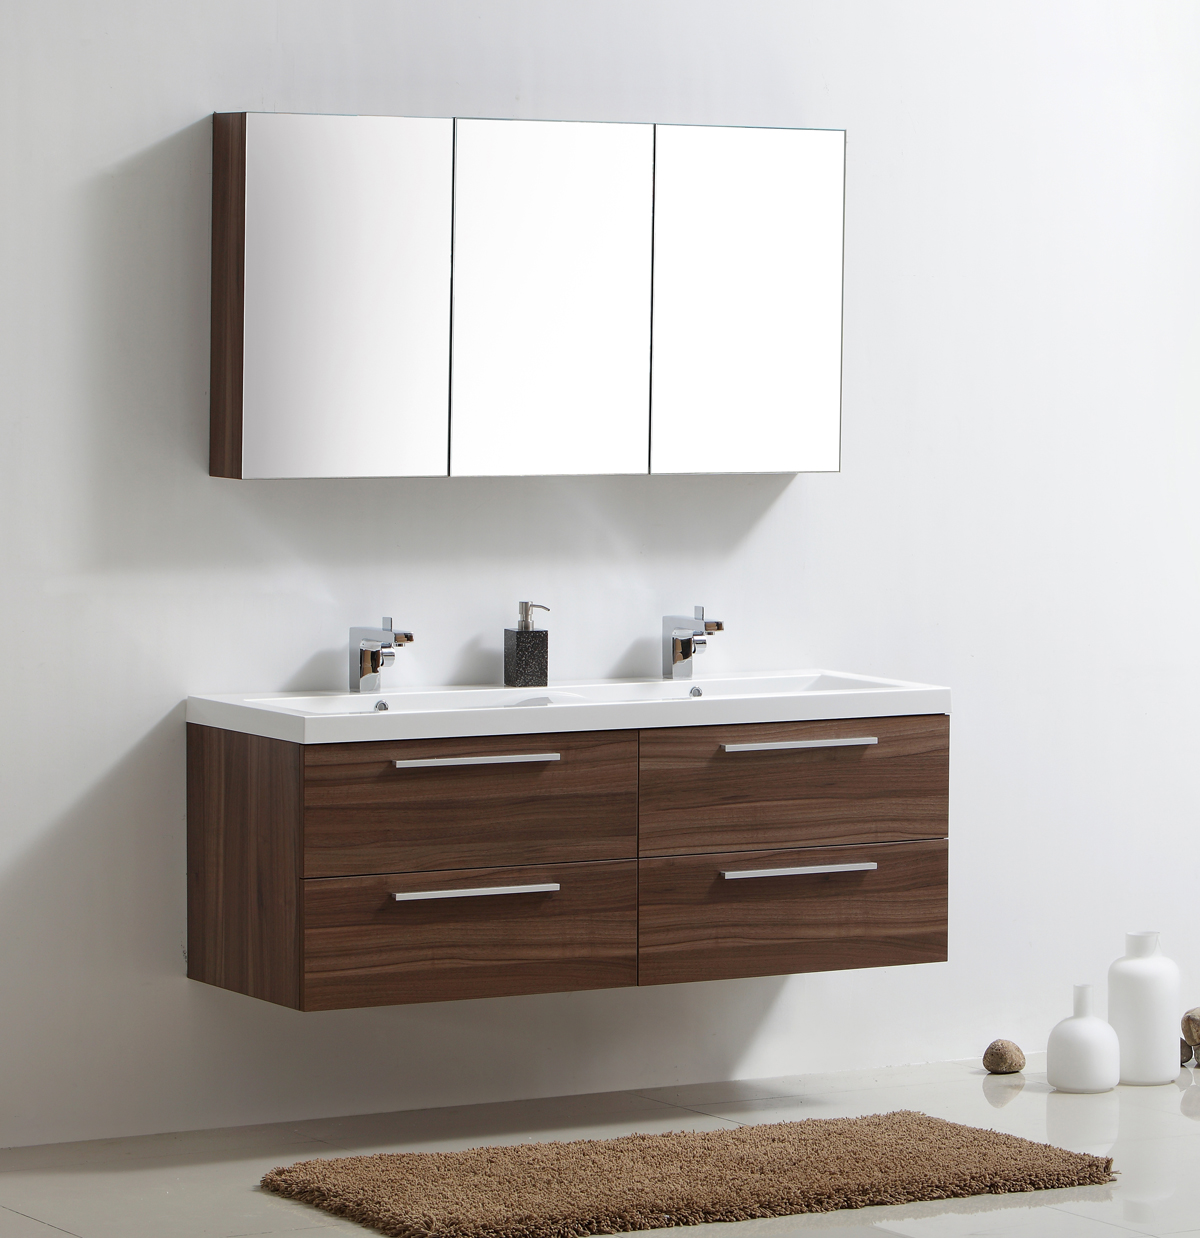 meuble de salle de bain noix armoire de toilette 3 portes miroir ext rieur ebay. Black Bedroom Furniture Sets. Home Design Ideas